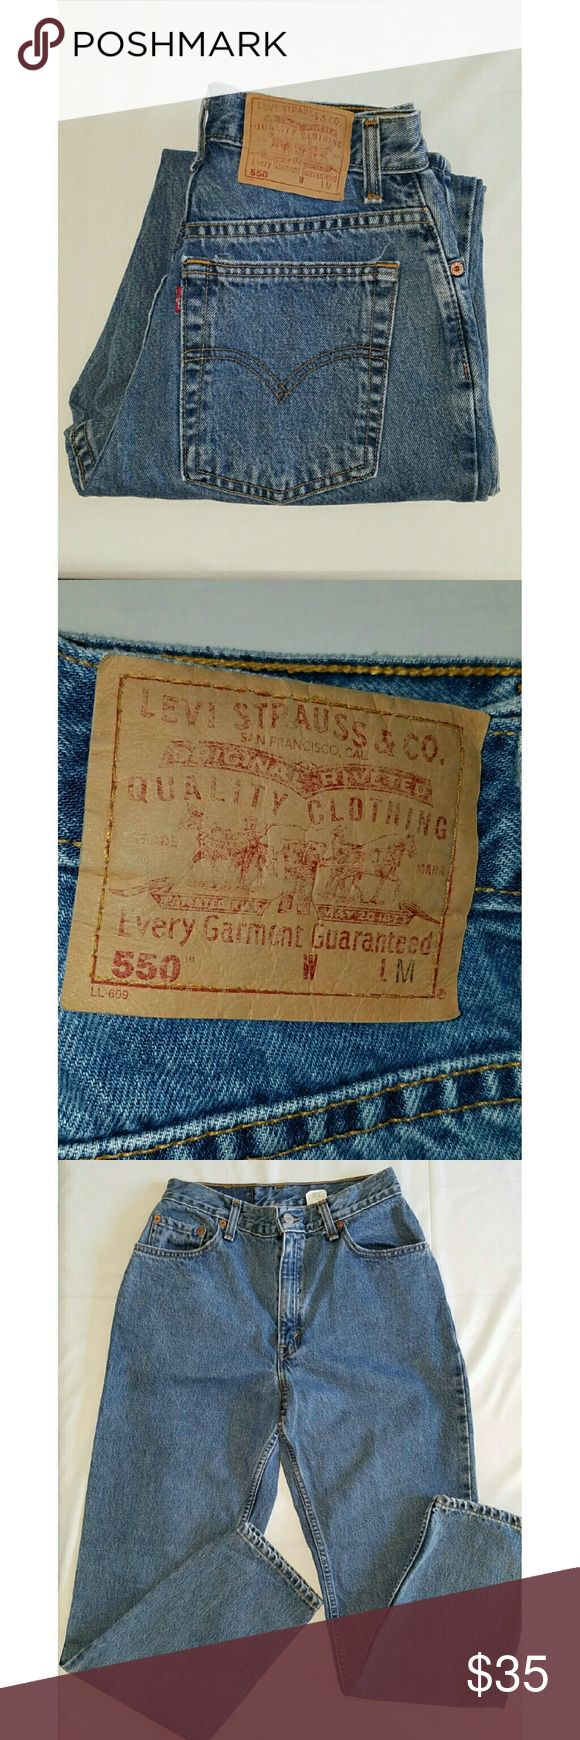 """NEWVTG LEVI'S 550 MOM JEANS LIGHT WASH JEANS VINTAGE LEVI'S 550 MOM JEANS LIGHT WASH Strut your stuff like your """"mom"""" did, afterall it was good enough for her!  Relaxed fit and tapered legs. Waist is 13"""" rise is 11"""" and inseam is 30"""". All measurements are approximate and taken flat.  Label says size 8 M. Levi's Jeans"""